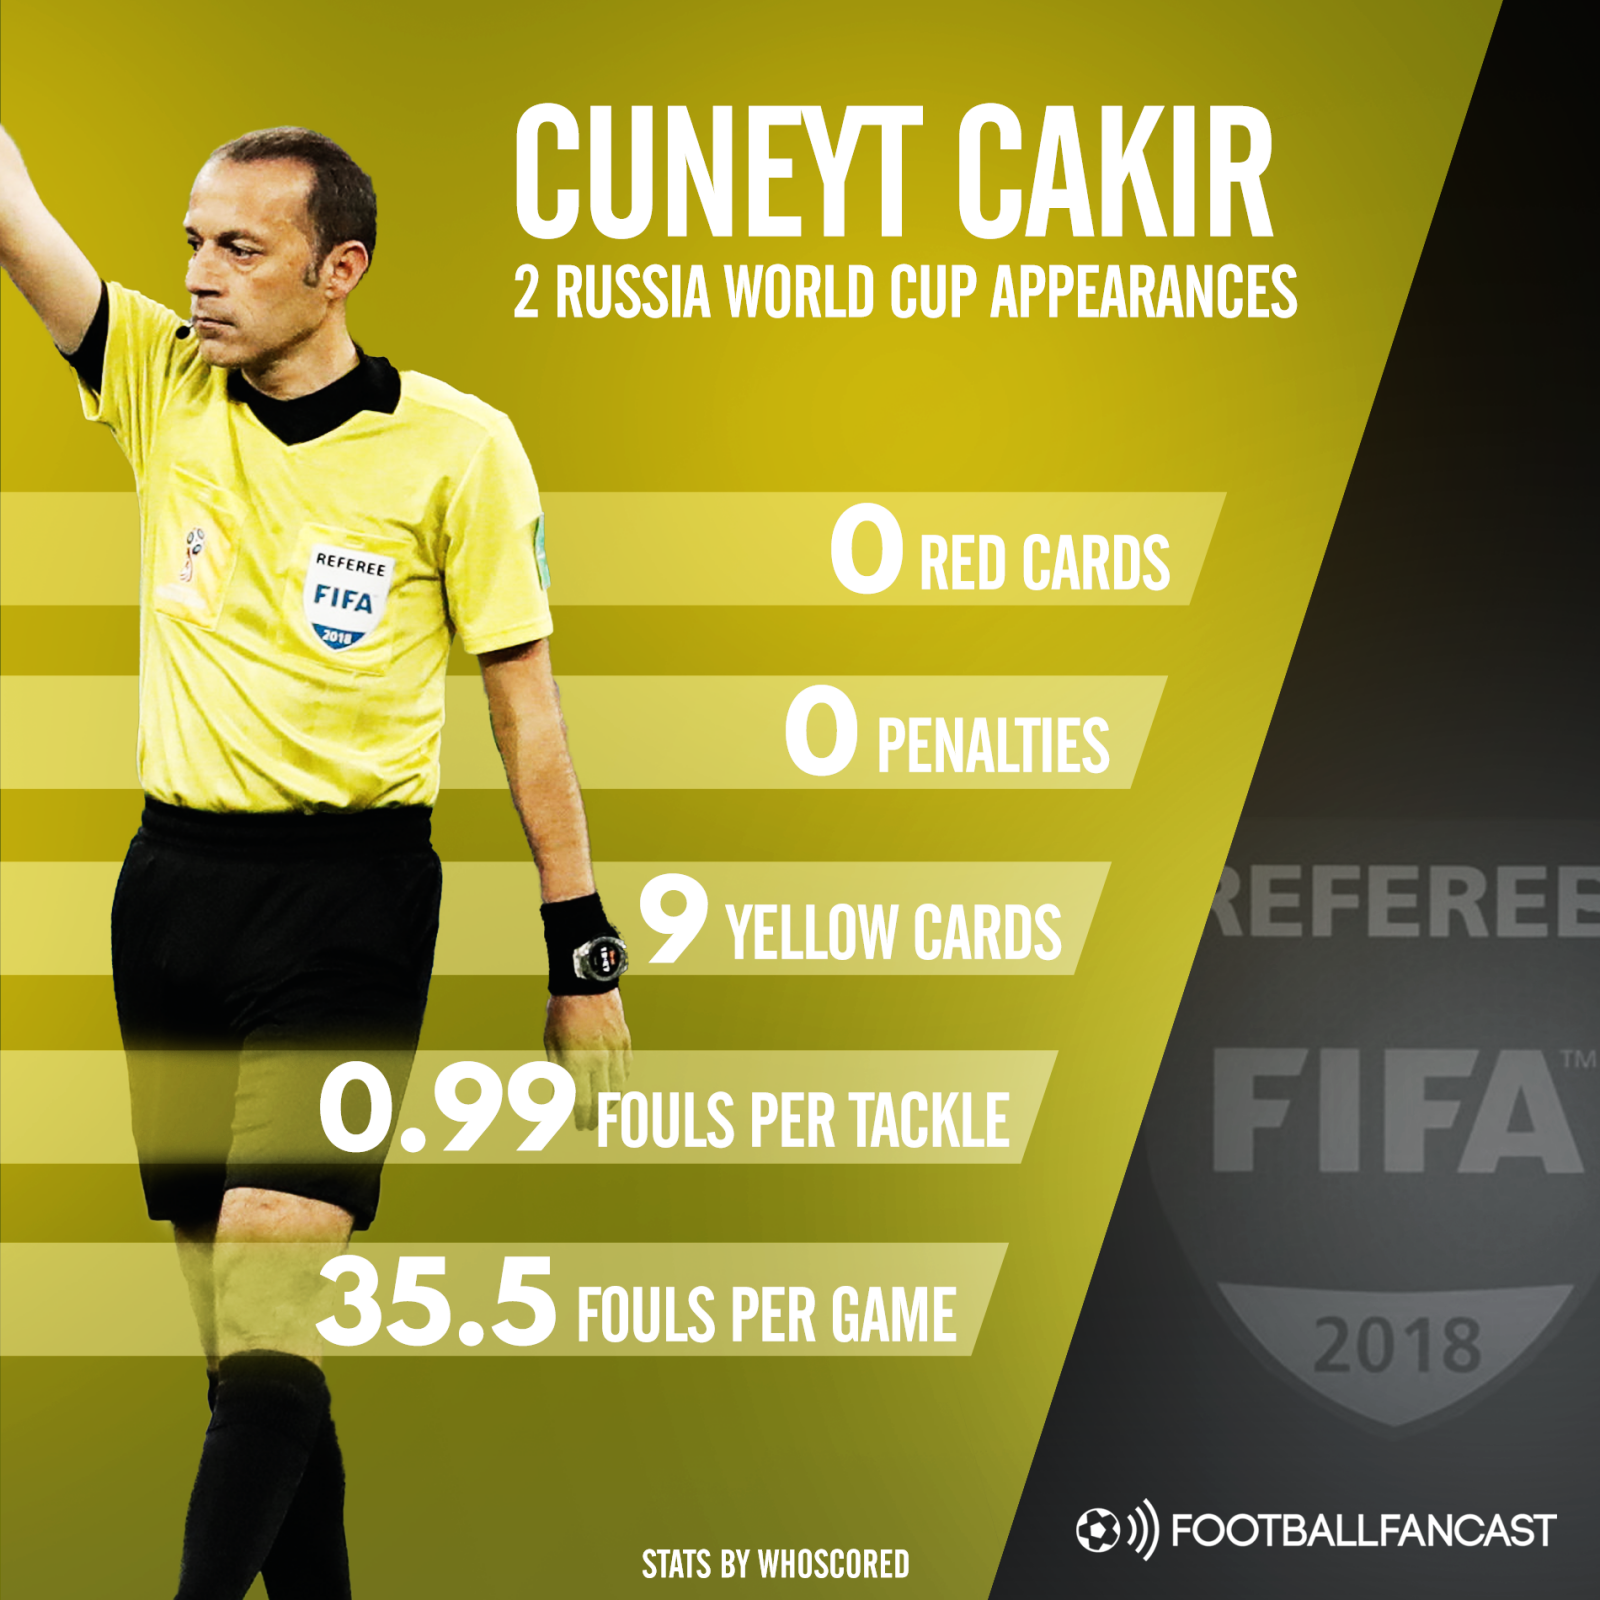 Cuneyt Cakir's stats from the World Cup so far